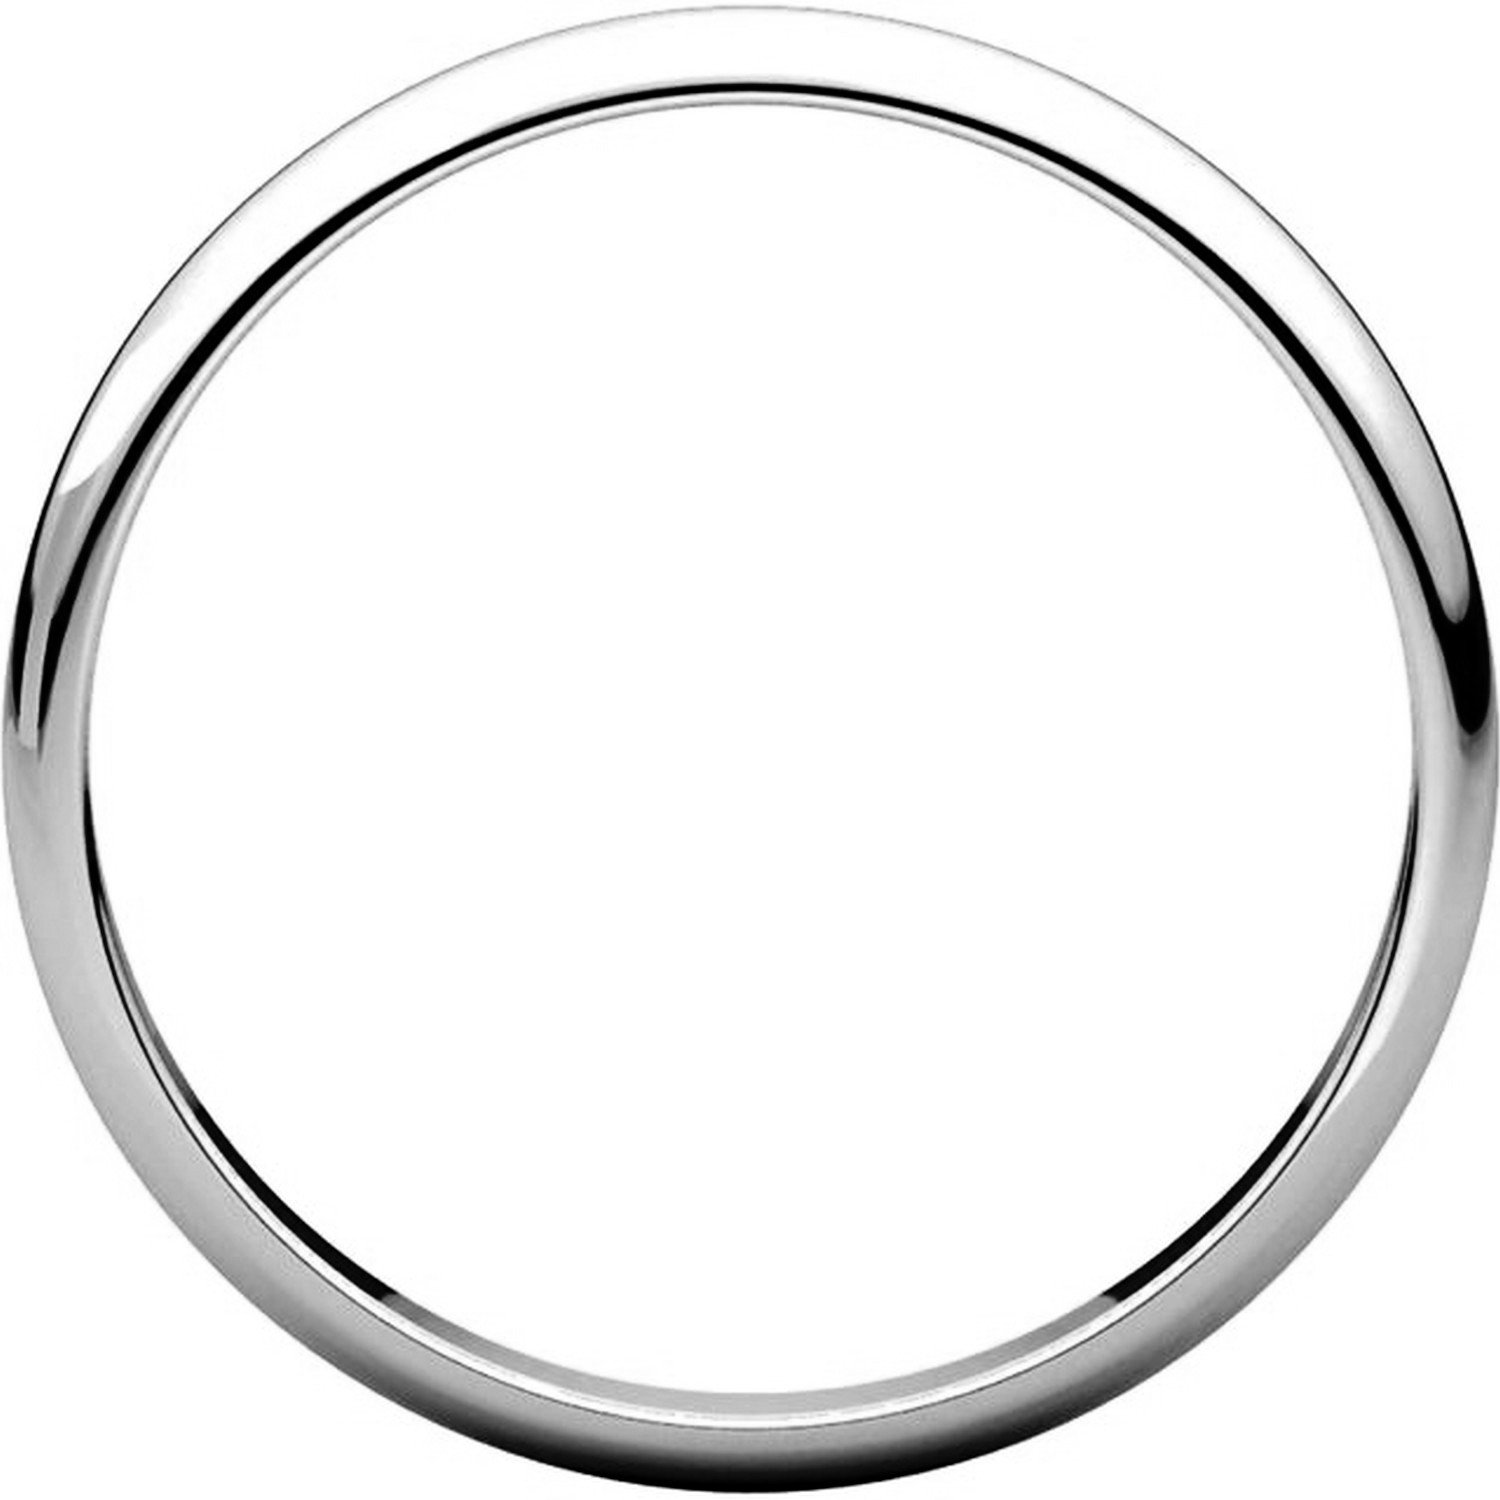 Plain Wedding Band 2.5mm Wide Mens and Womens 14k White Gold